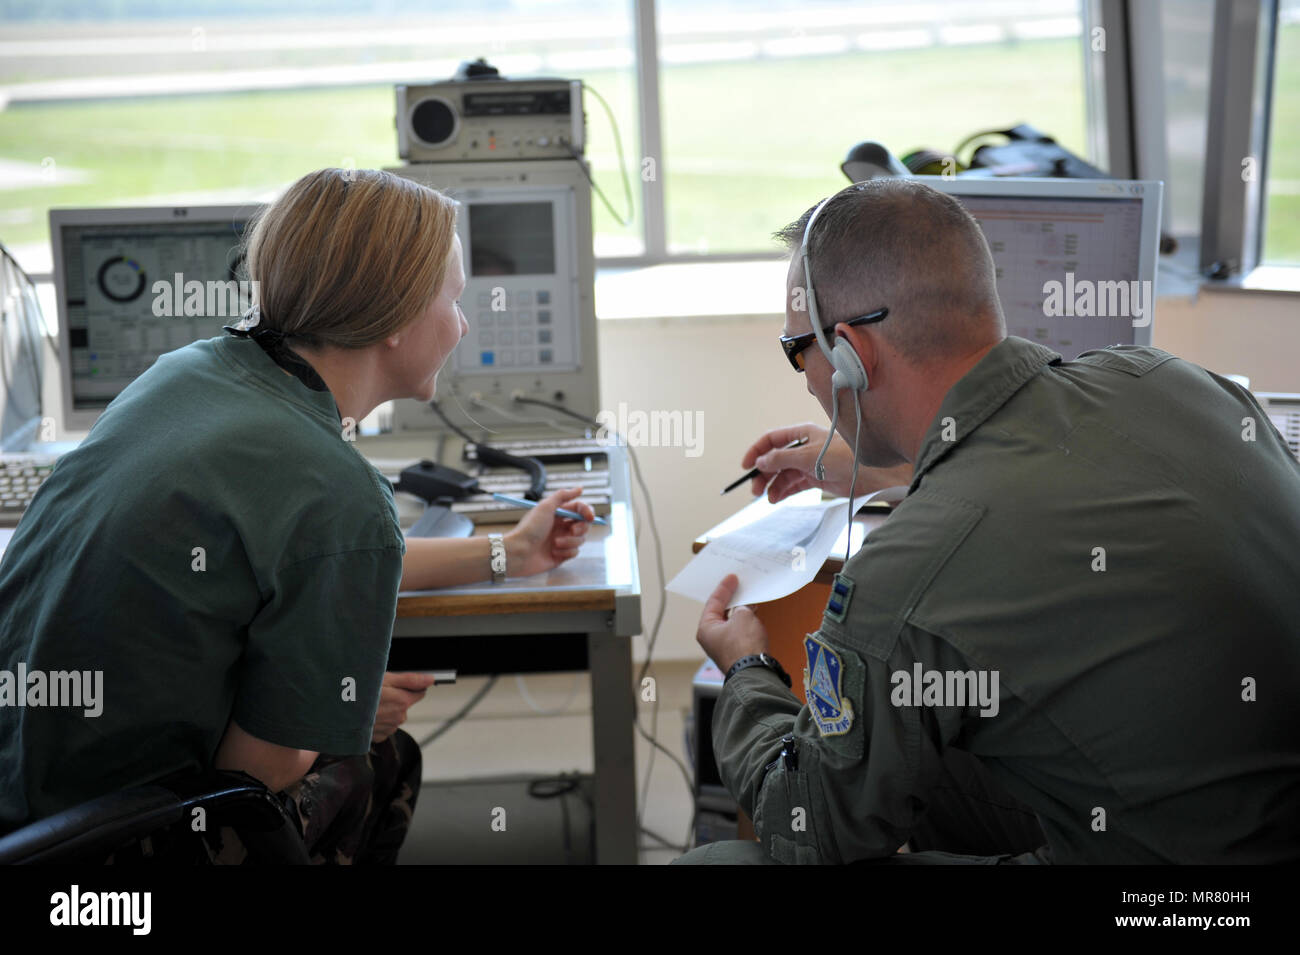 Capt. Justin Kreischer, an F-16 pilot assigned to the 180th Fighter Wing, Ohio Air National Guard works alongside 1Lt. Krisztina Kovacs, a ground controller assigned to the Hungarian Air Force, while in the air traffic control tower May 26, 2017 at Kecskemet Air Base, Hungary. Approximately 150 Airmen and eight F-16 fighter jets from the 180FW traveled to the air base to participate in Load Diffuser 17, a two-week Hungarian-led multinational exercise focused on enhancing interoperability capabilities and skills among NATO allied and European partner air forces by conducting joint operations an - Stock Image